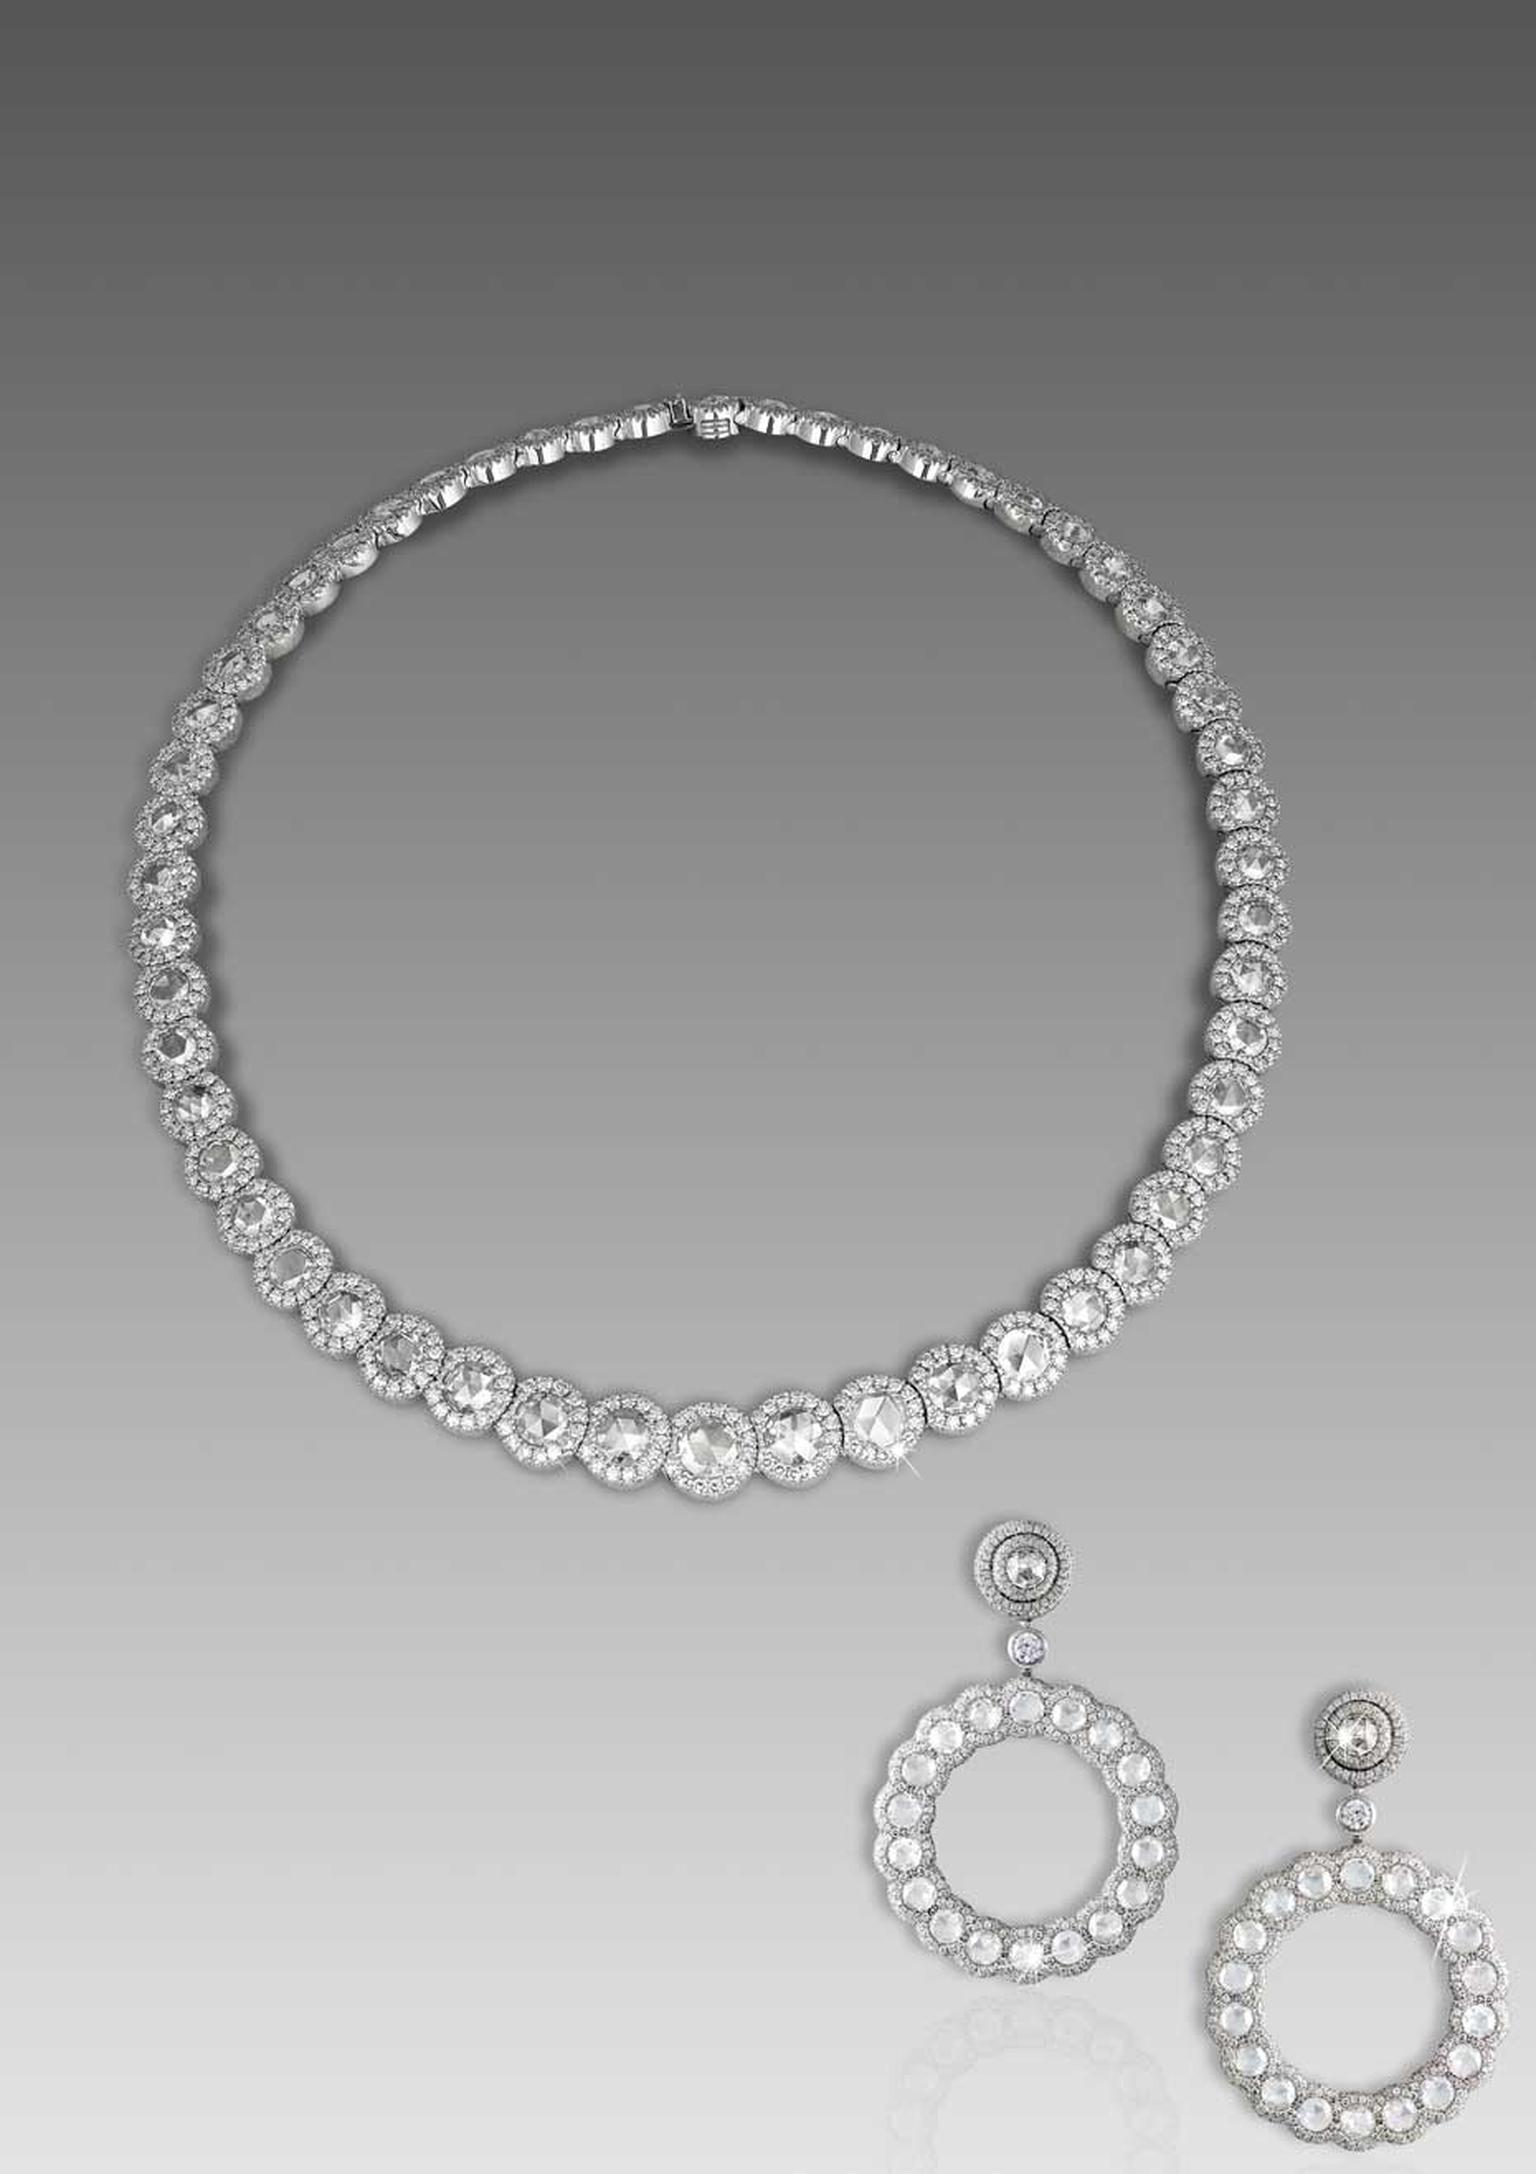 David Morris Rose-cut collection diamond necklace and earrings with rose-cut diamonds, set in white gold.